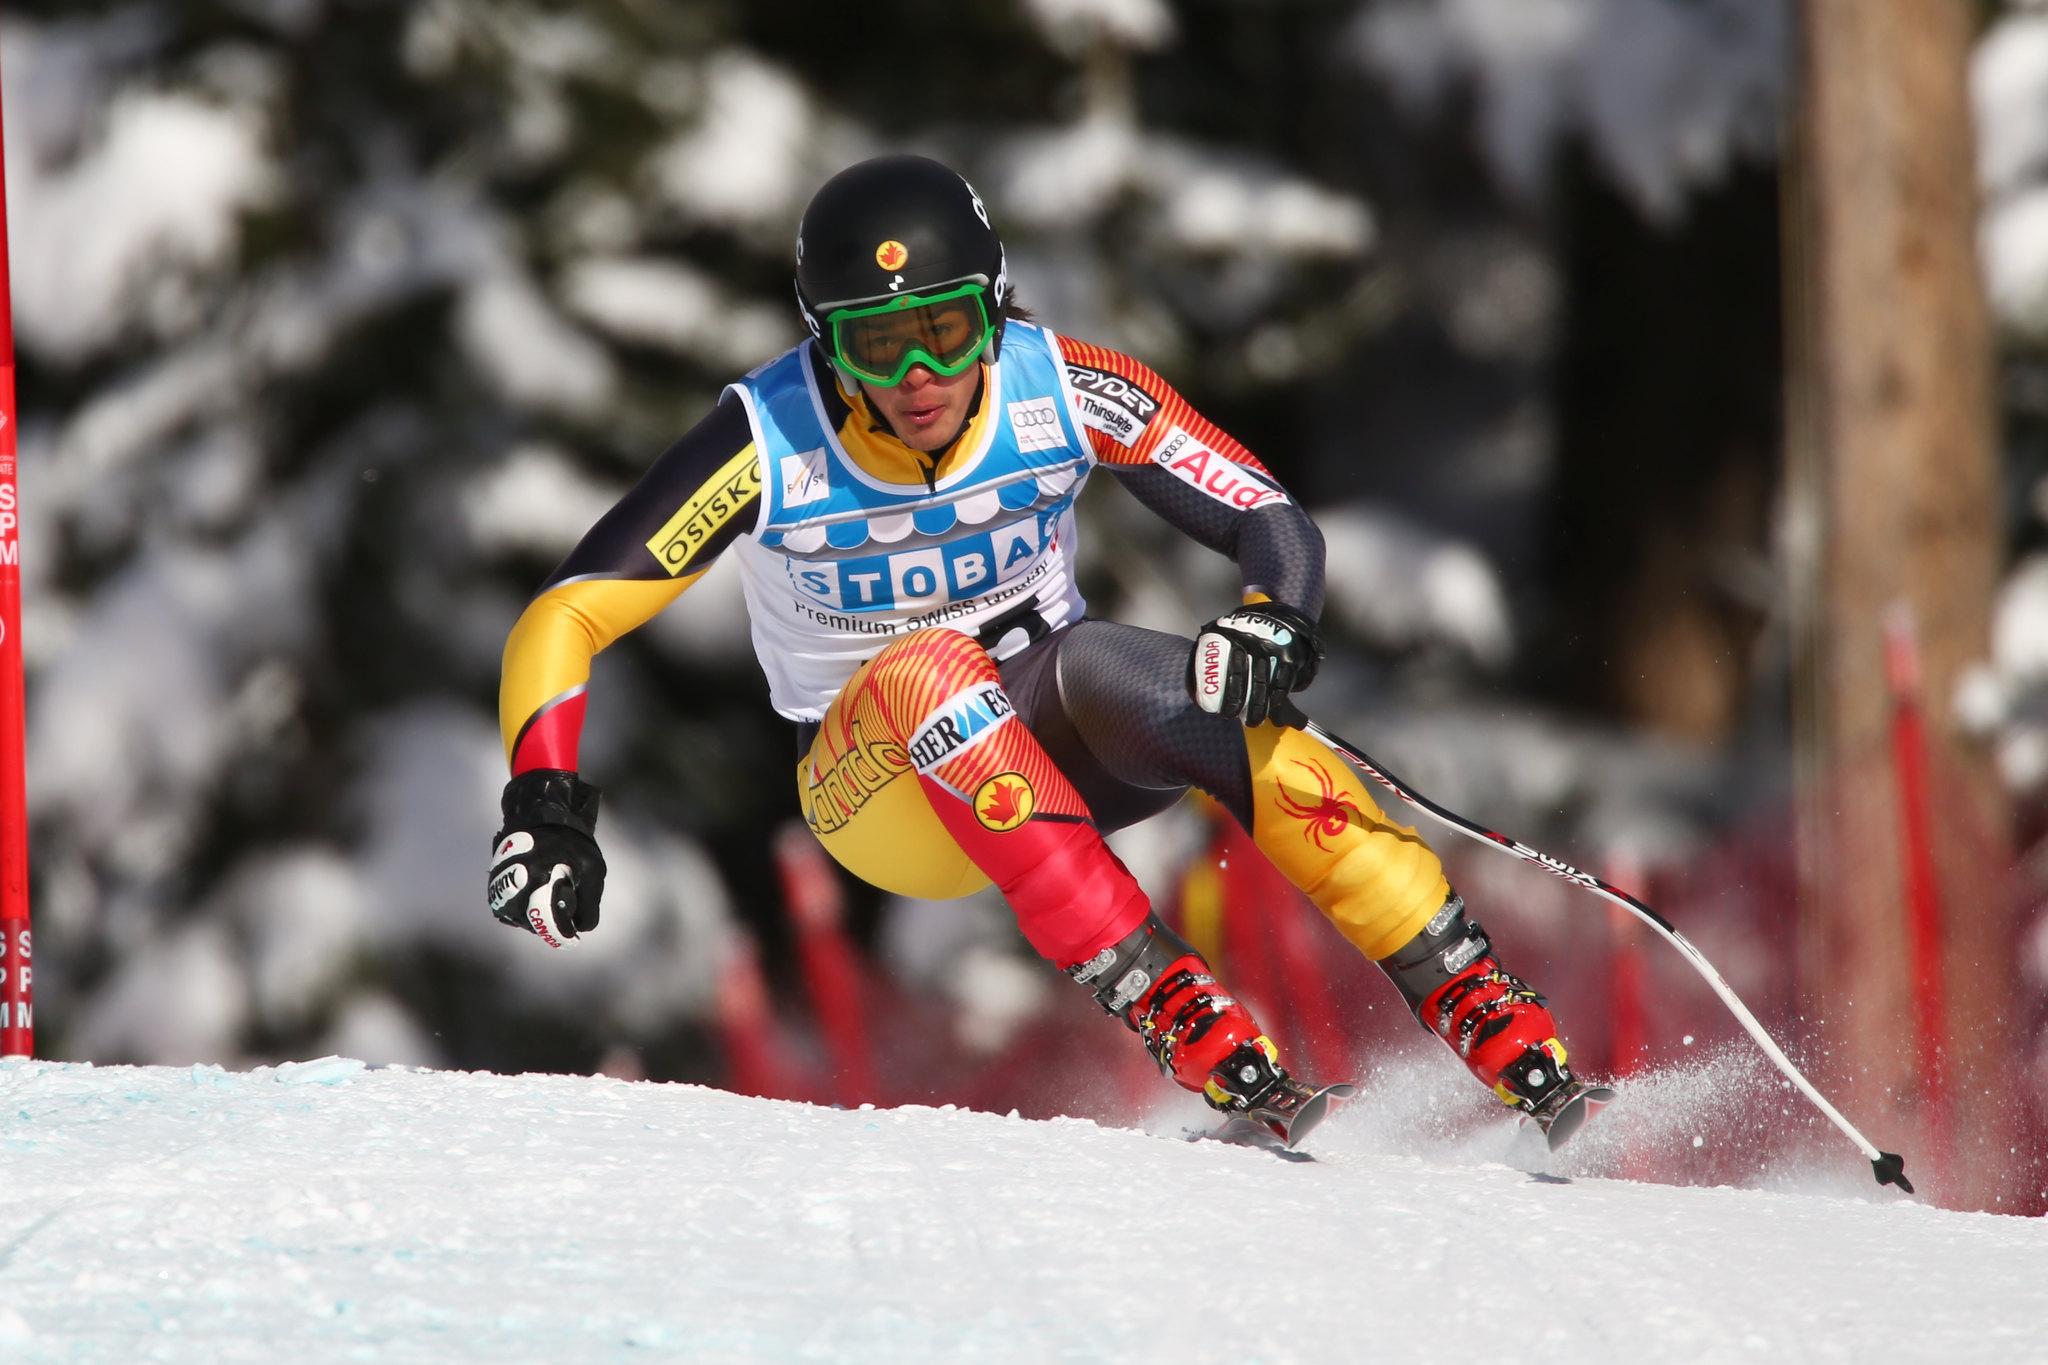 Morgan Pridy during the second downhill training run in Lake Louise (Nov. 2012)